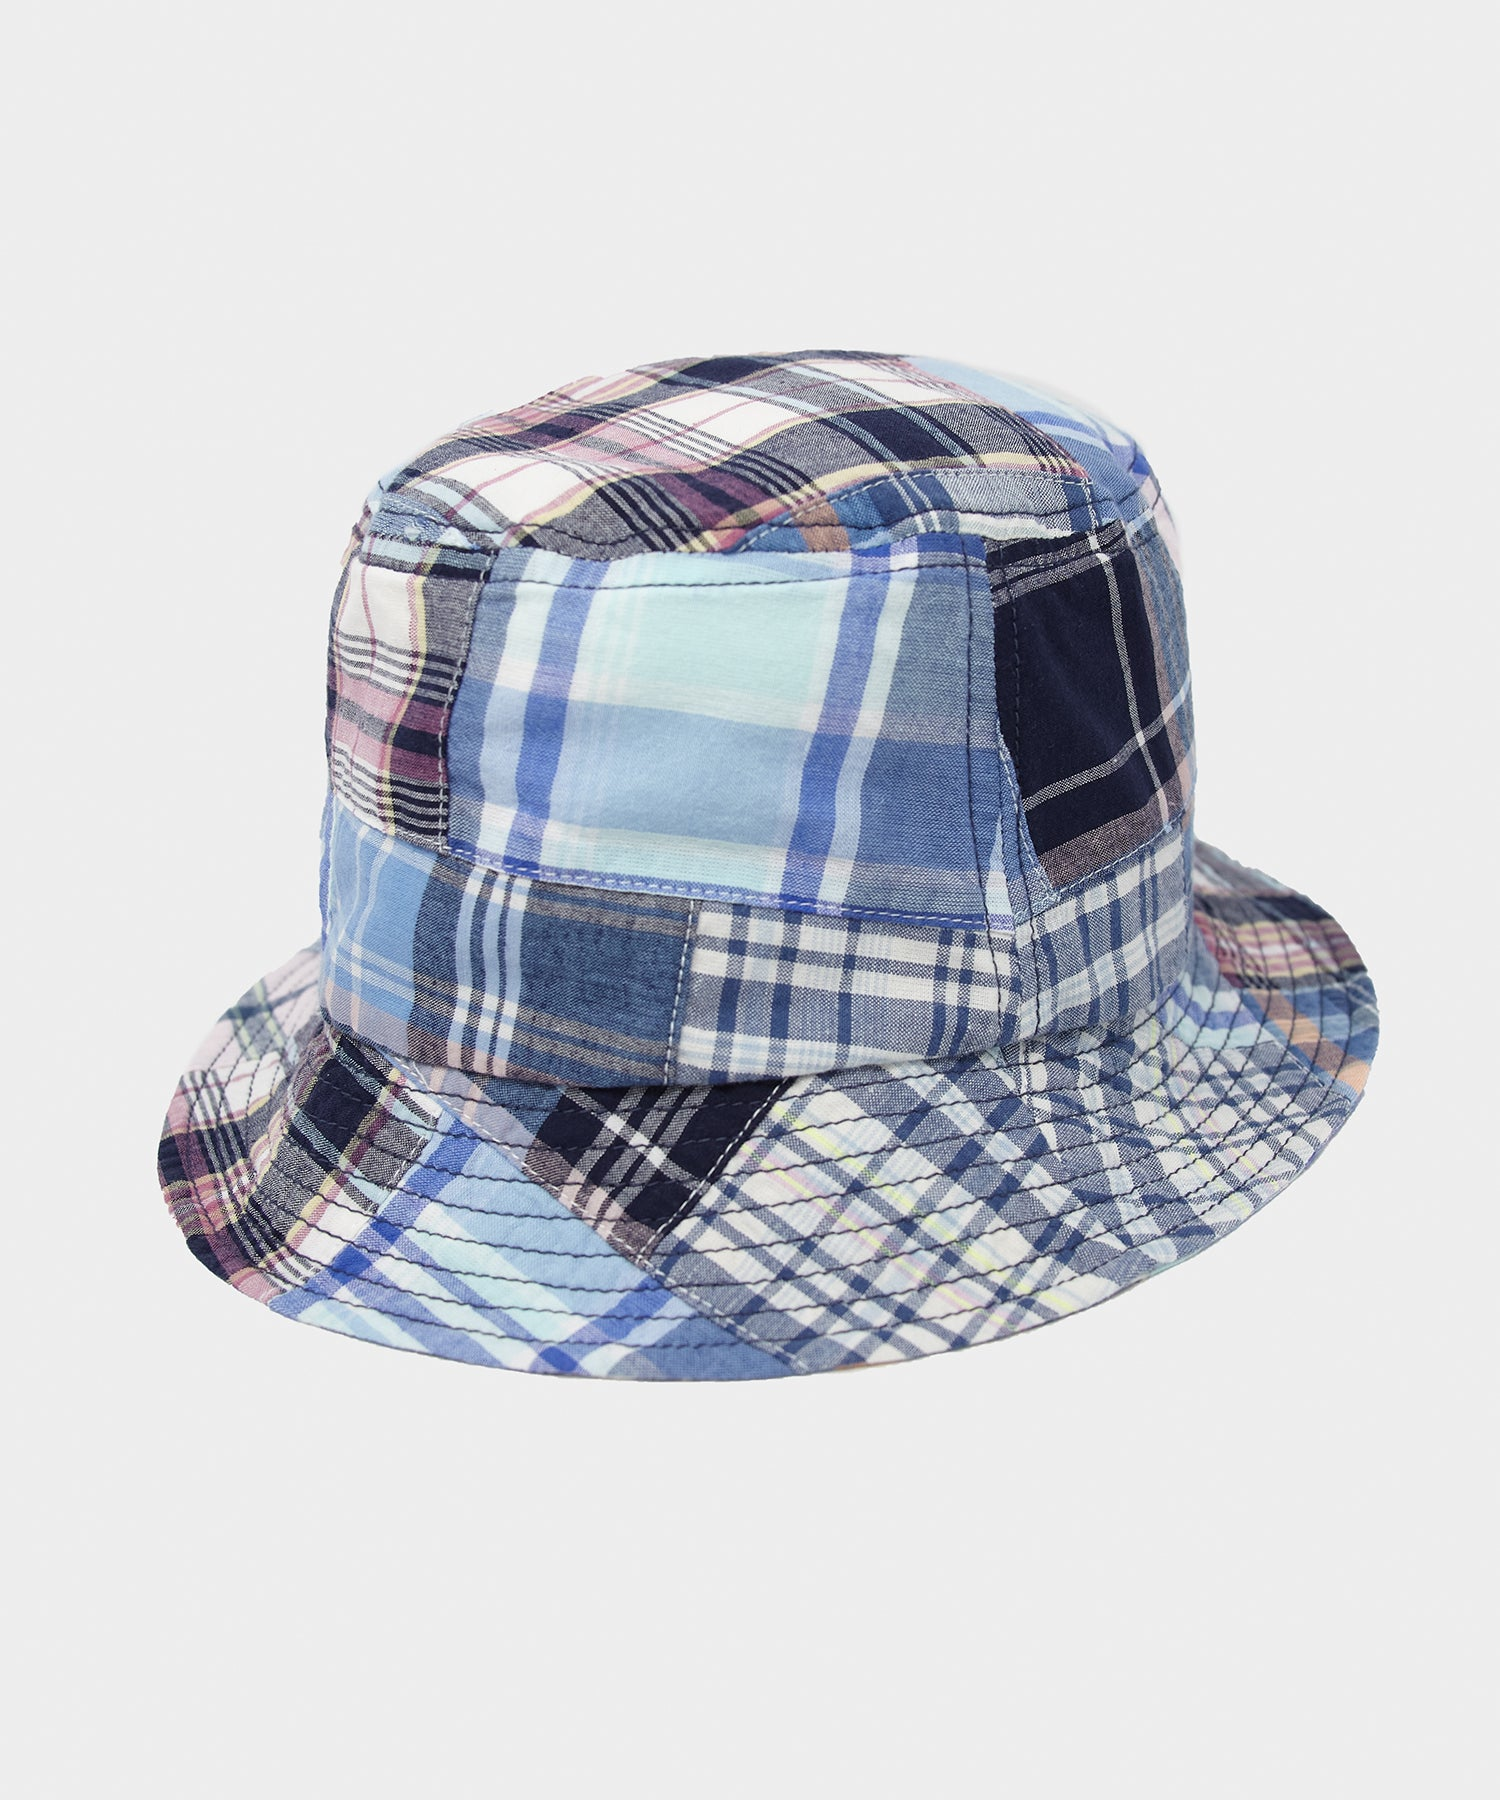 Câbleami Madras Patchwork Bucket Hat in Navy